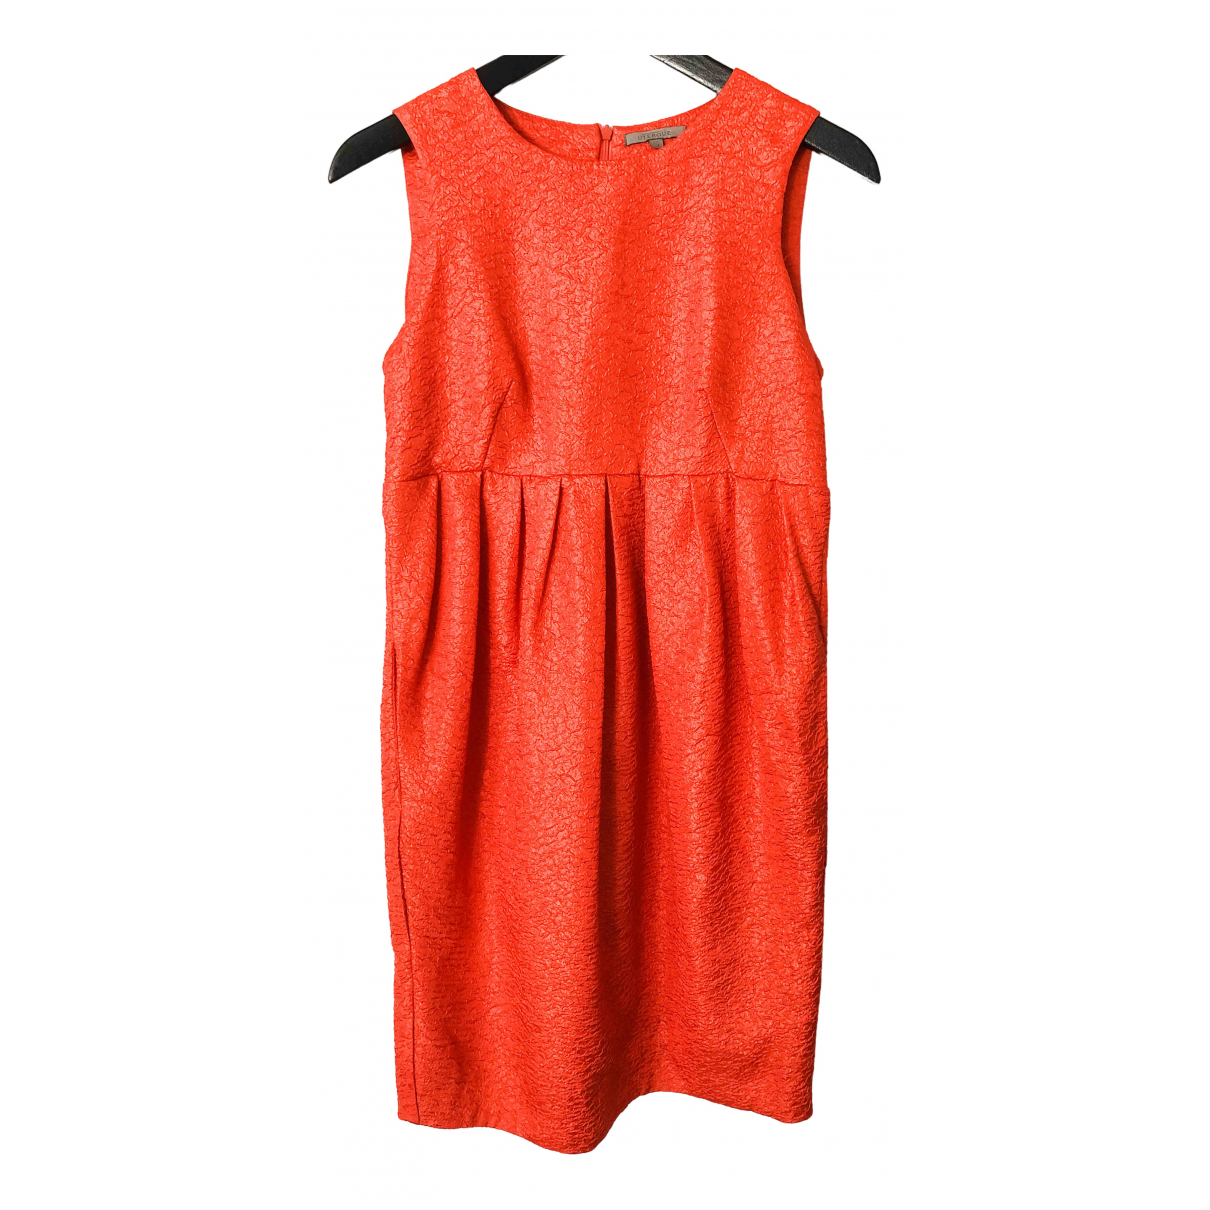 Uterque \N Orange dress for Women S International